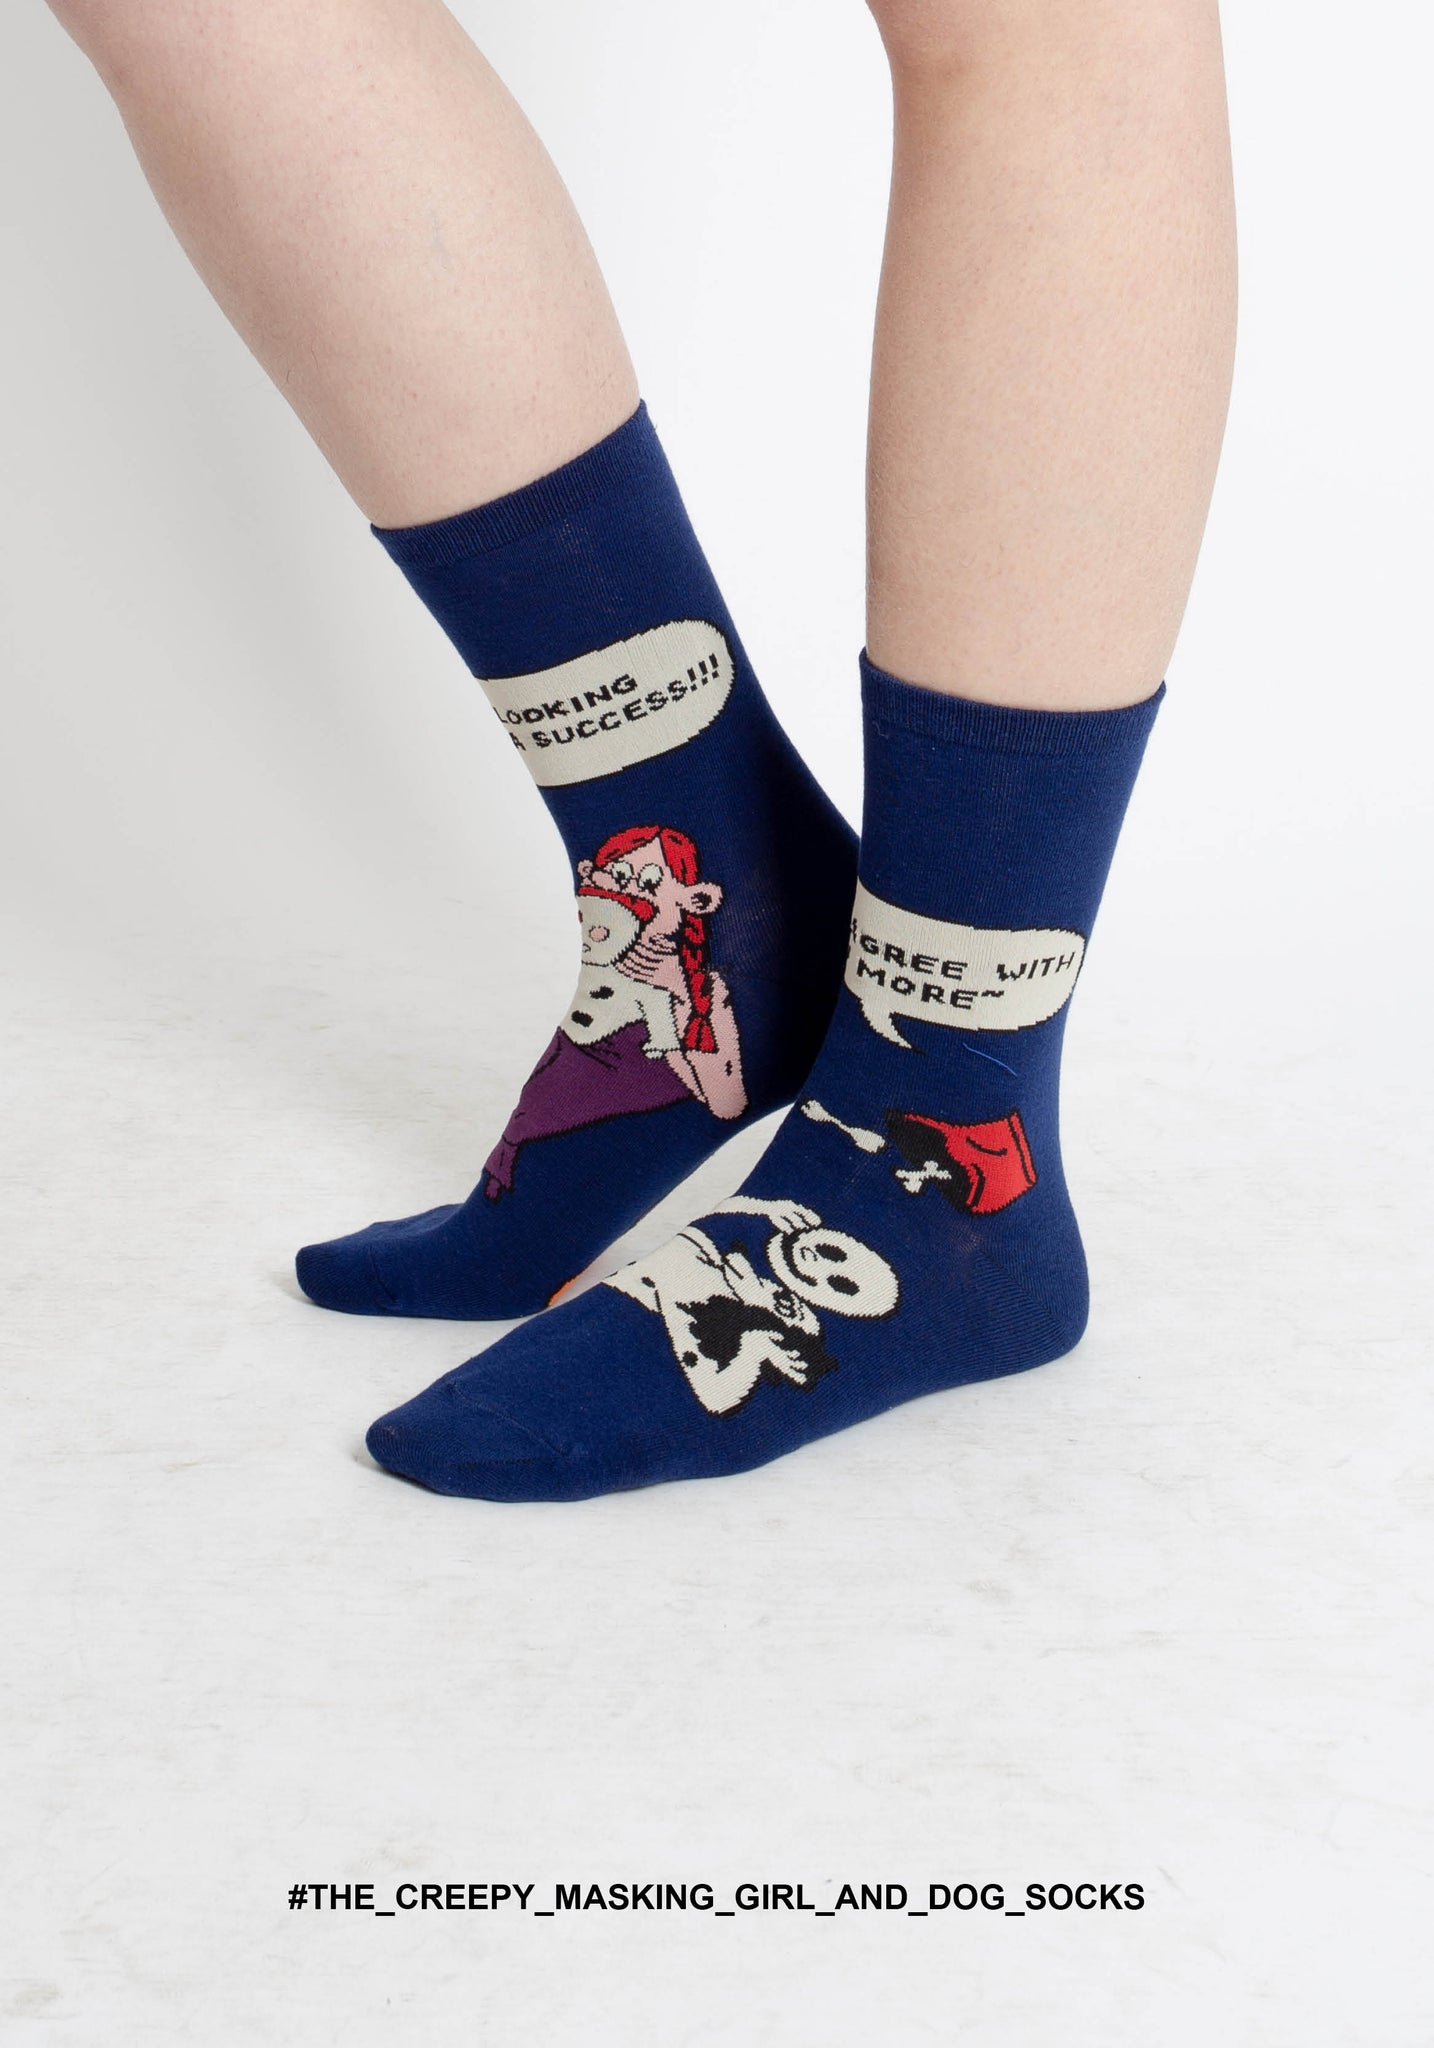 The Creepy Masking Girl And Dog Socks - whoami